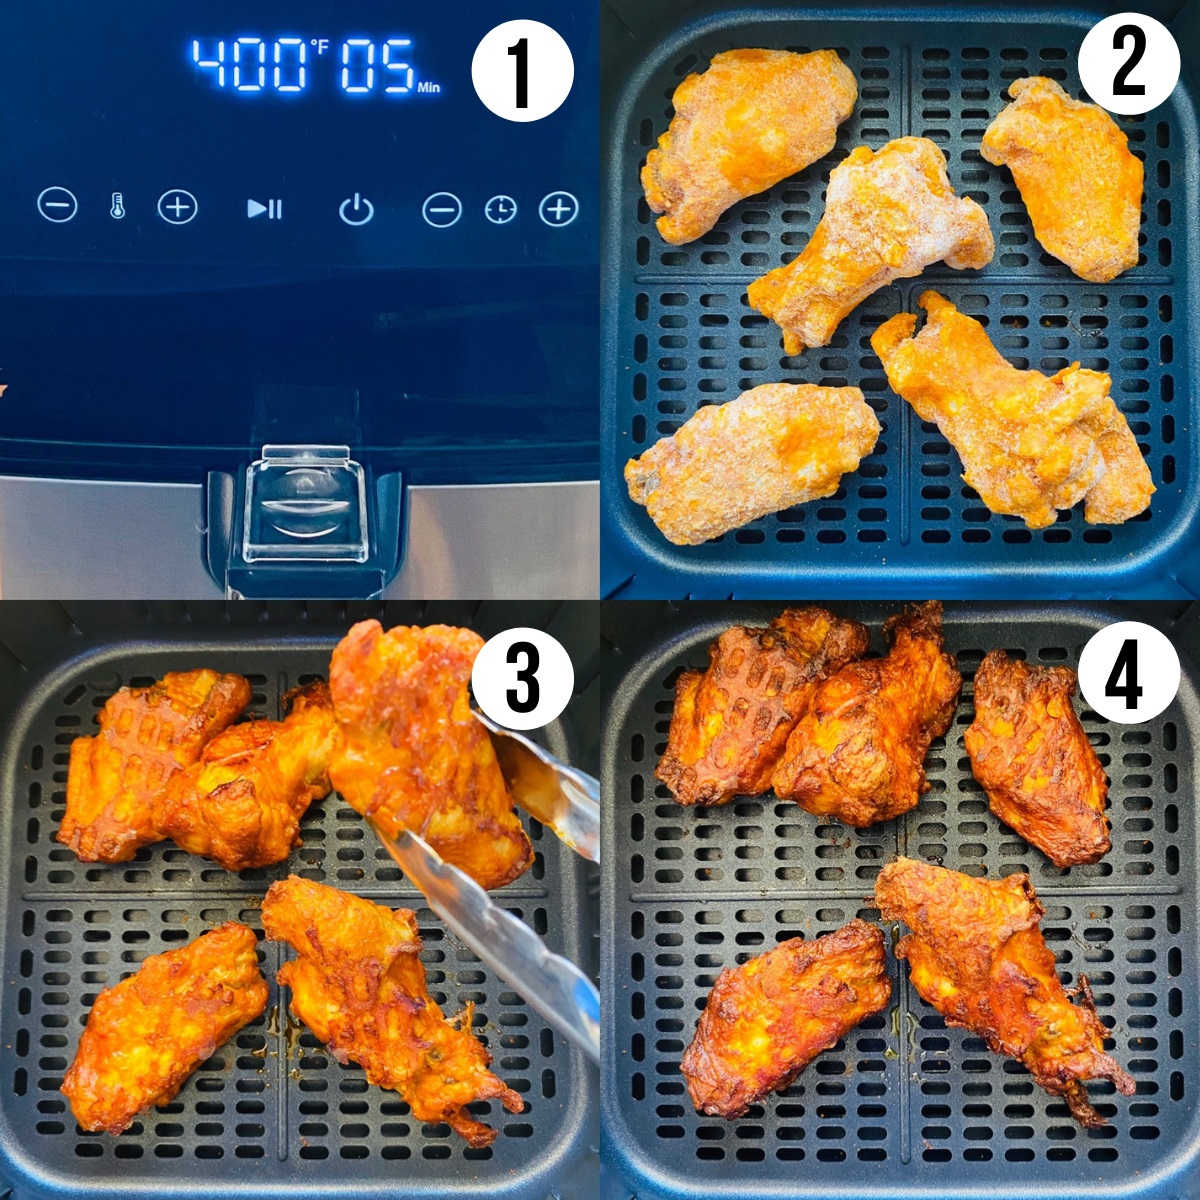 cooking frozen chicken wings in air fryer process shots 1 through 4